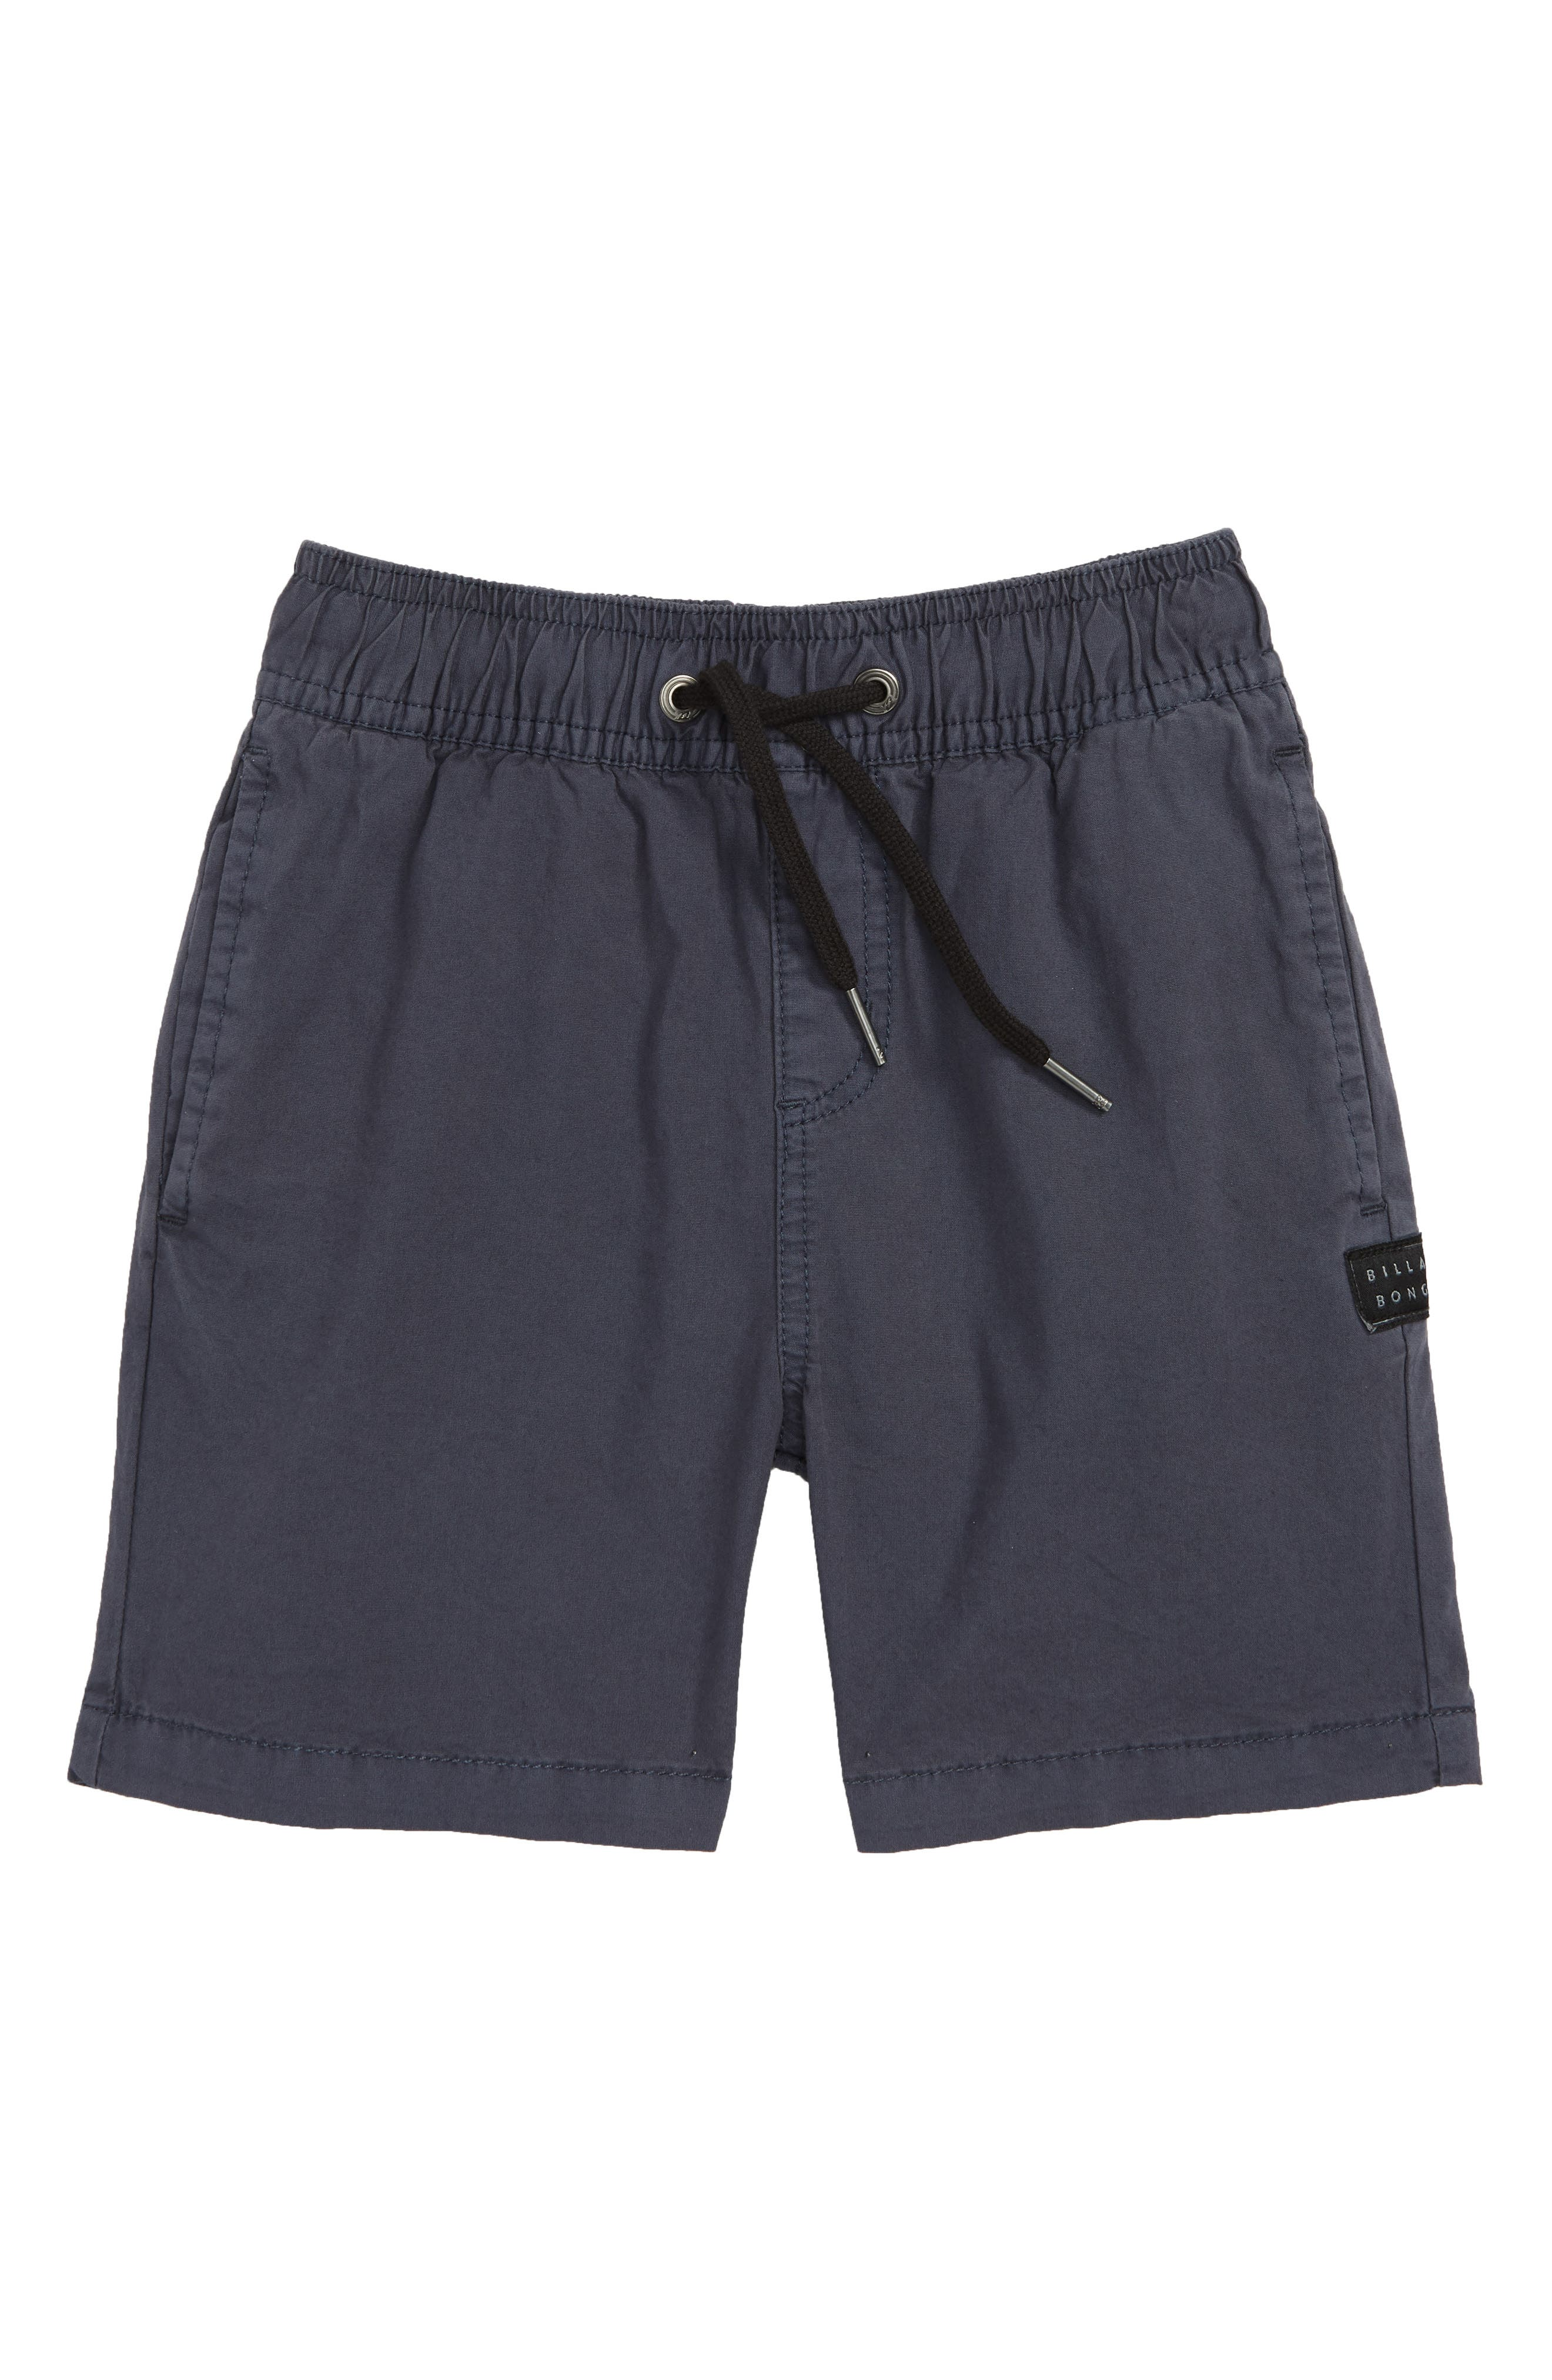 Larry Shorts,                             Main thumbnail 1, color,                             WASHED SLATE